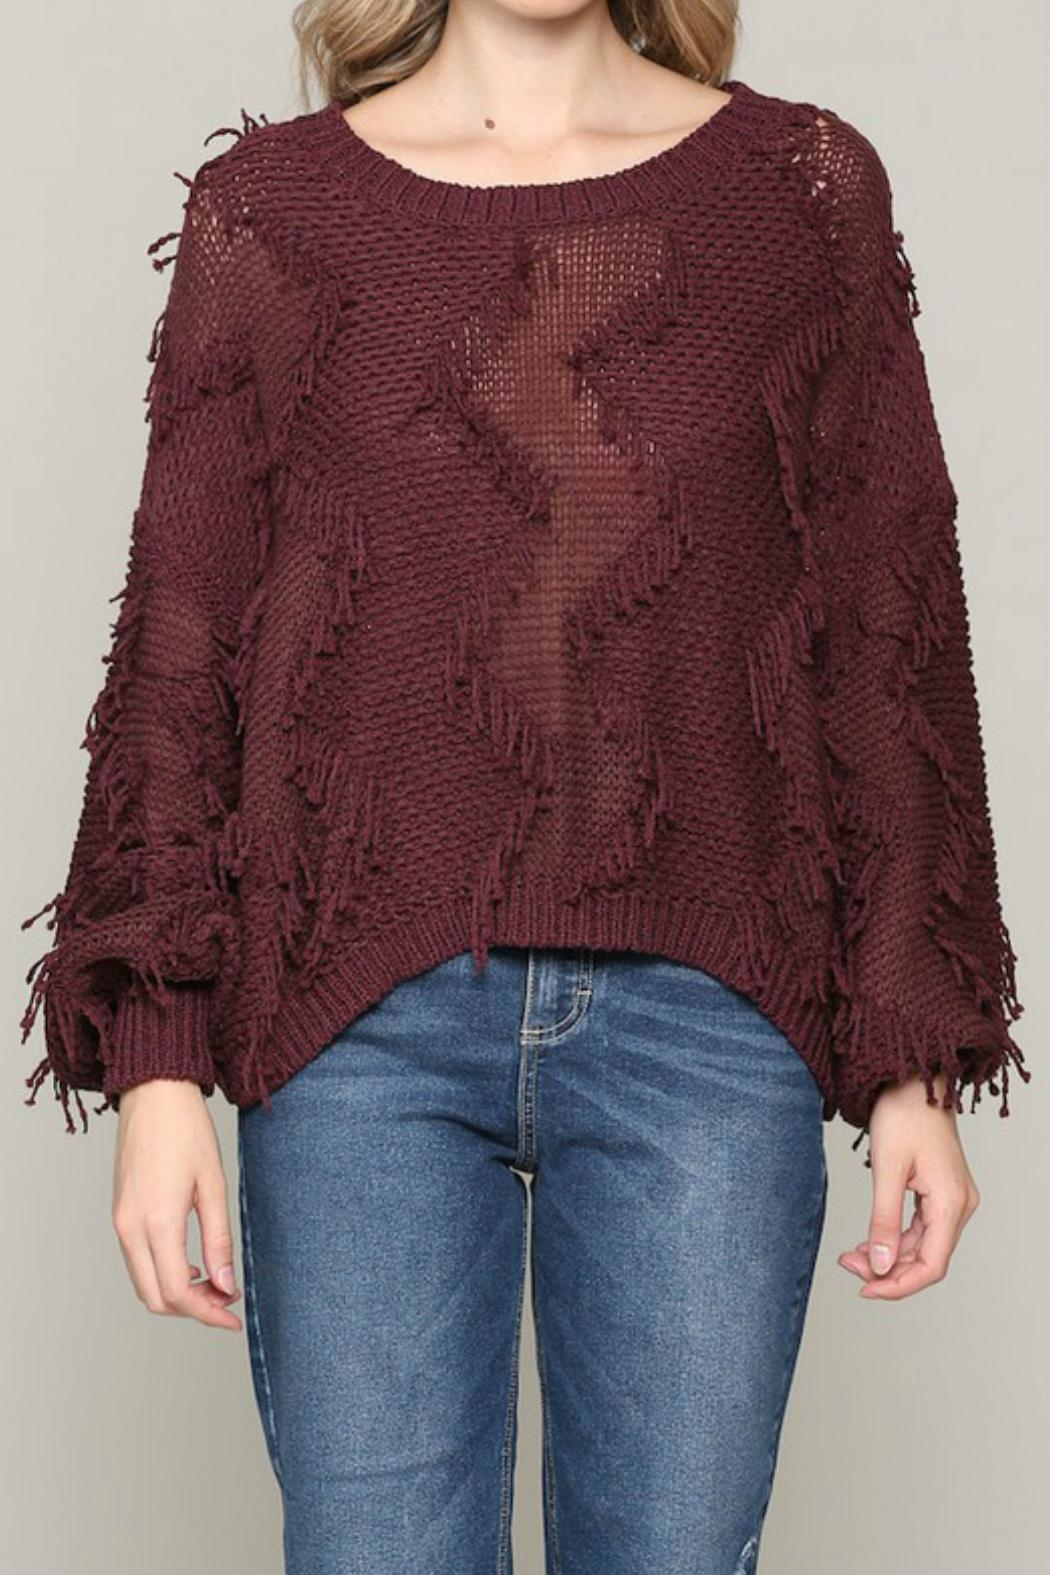 ALB Anchorage Fringe Pullover Sweater - Main Image